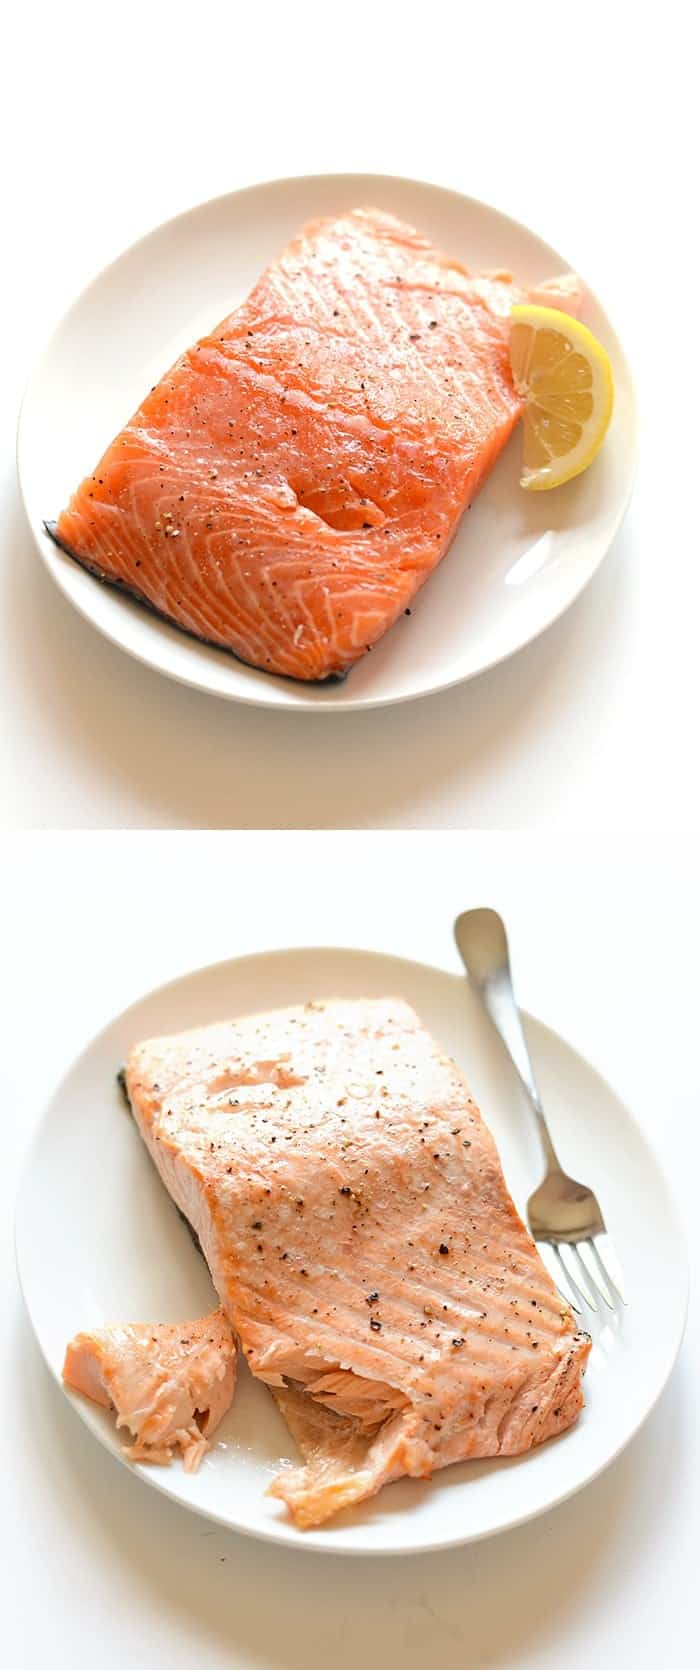 raw and cooked slice of salmon